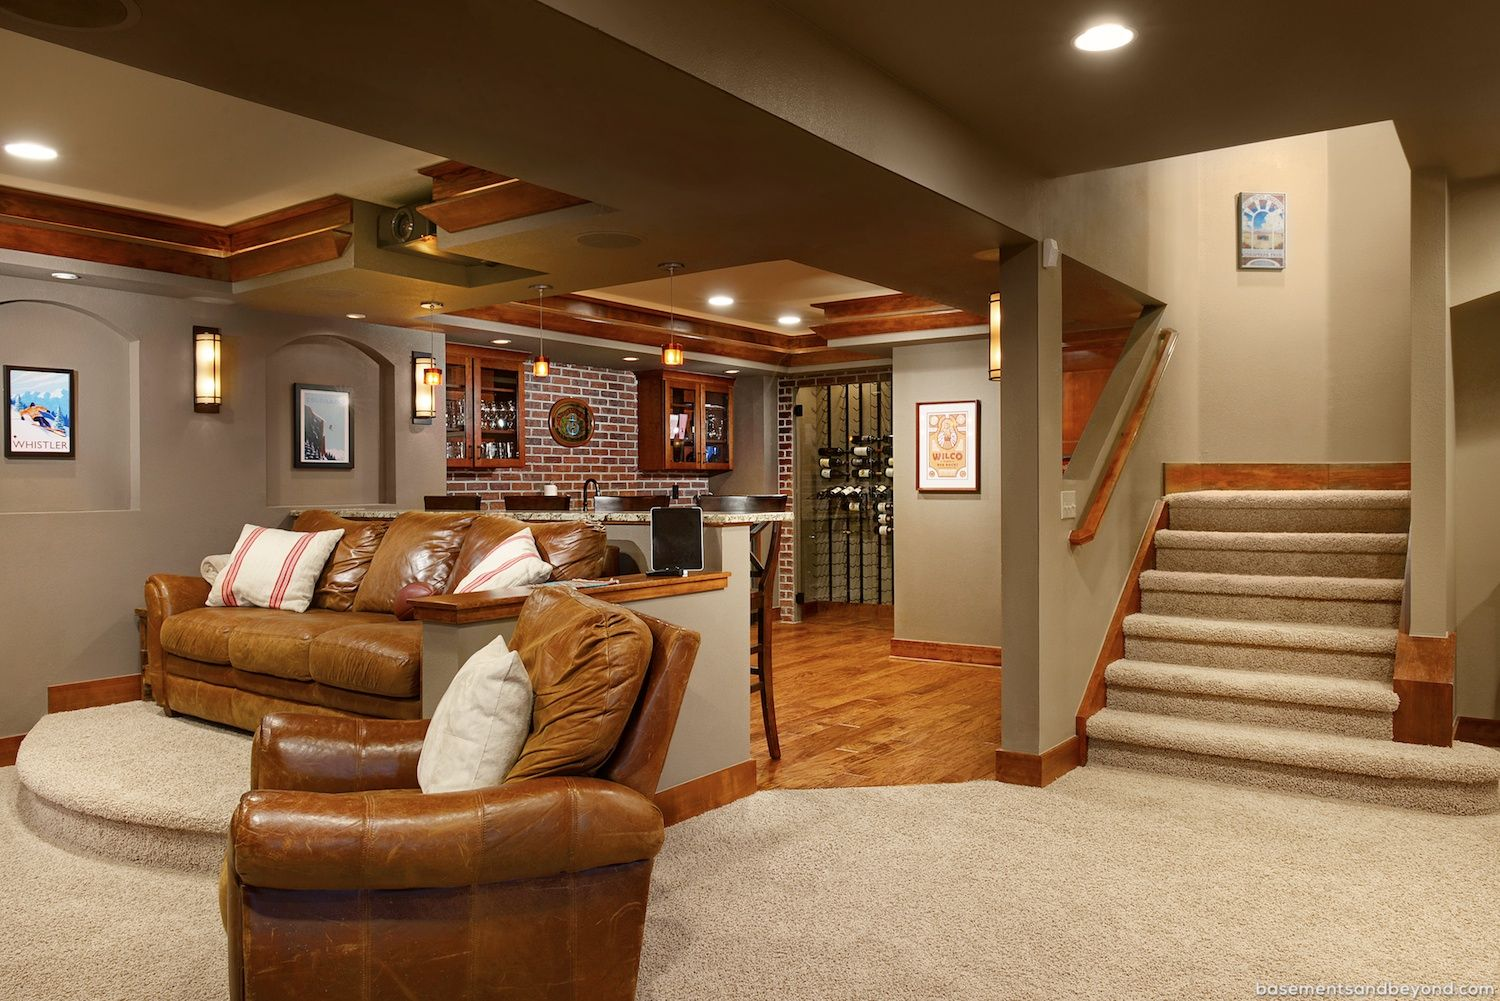 Wow just superb remodelled basement ideas pinterest - Pinterest basement ideas ...